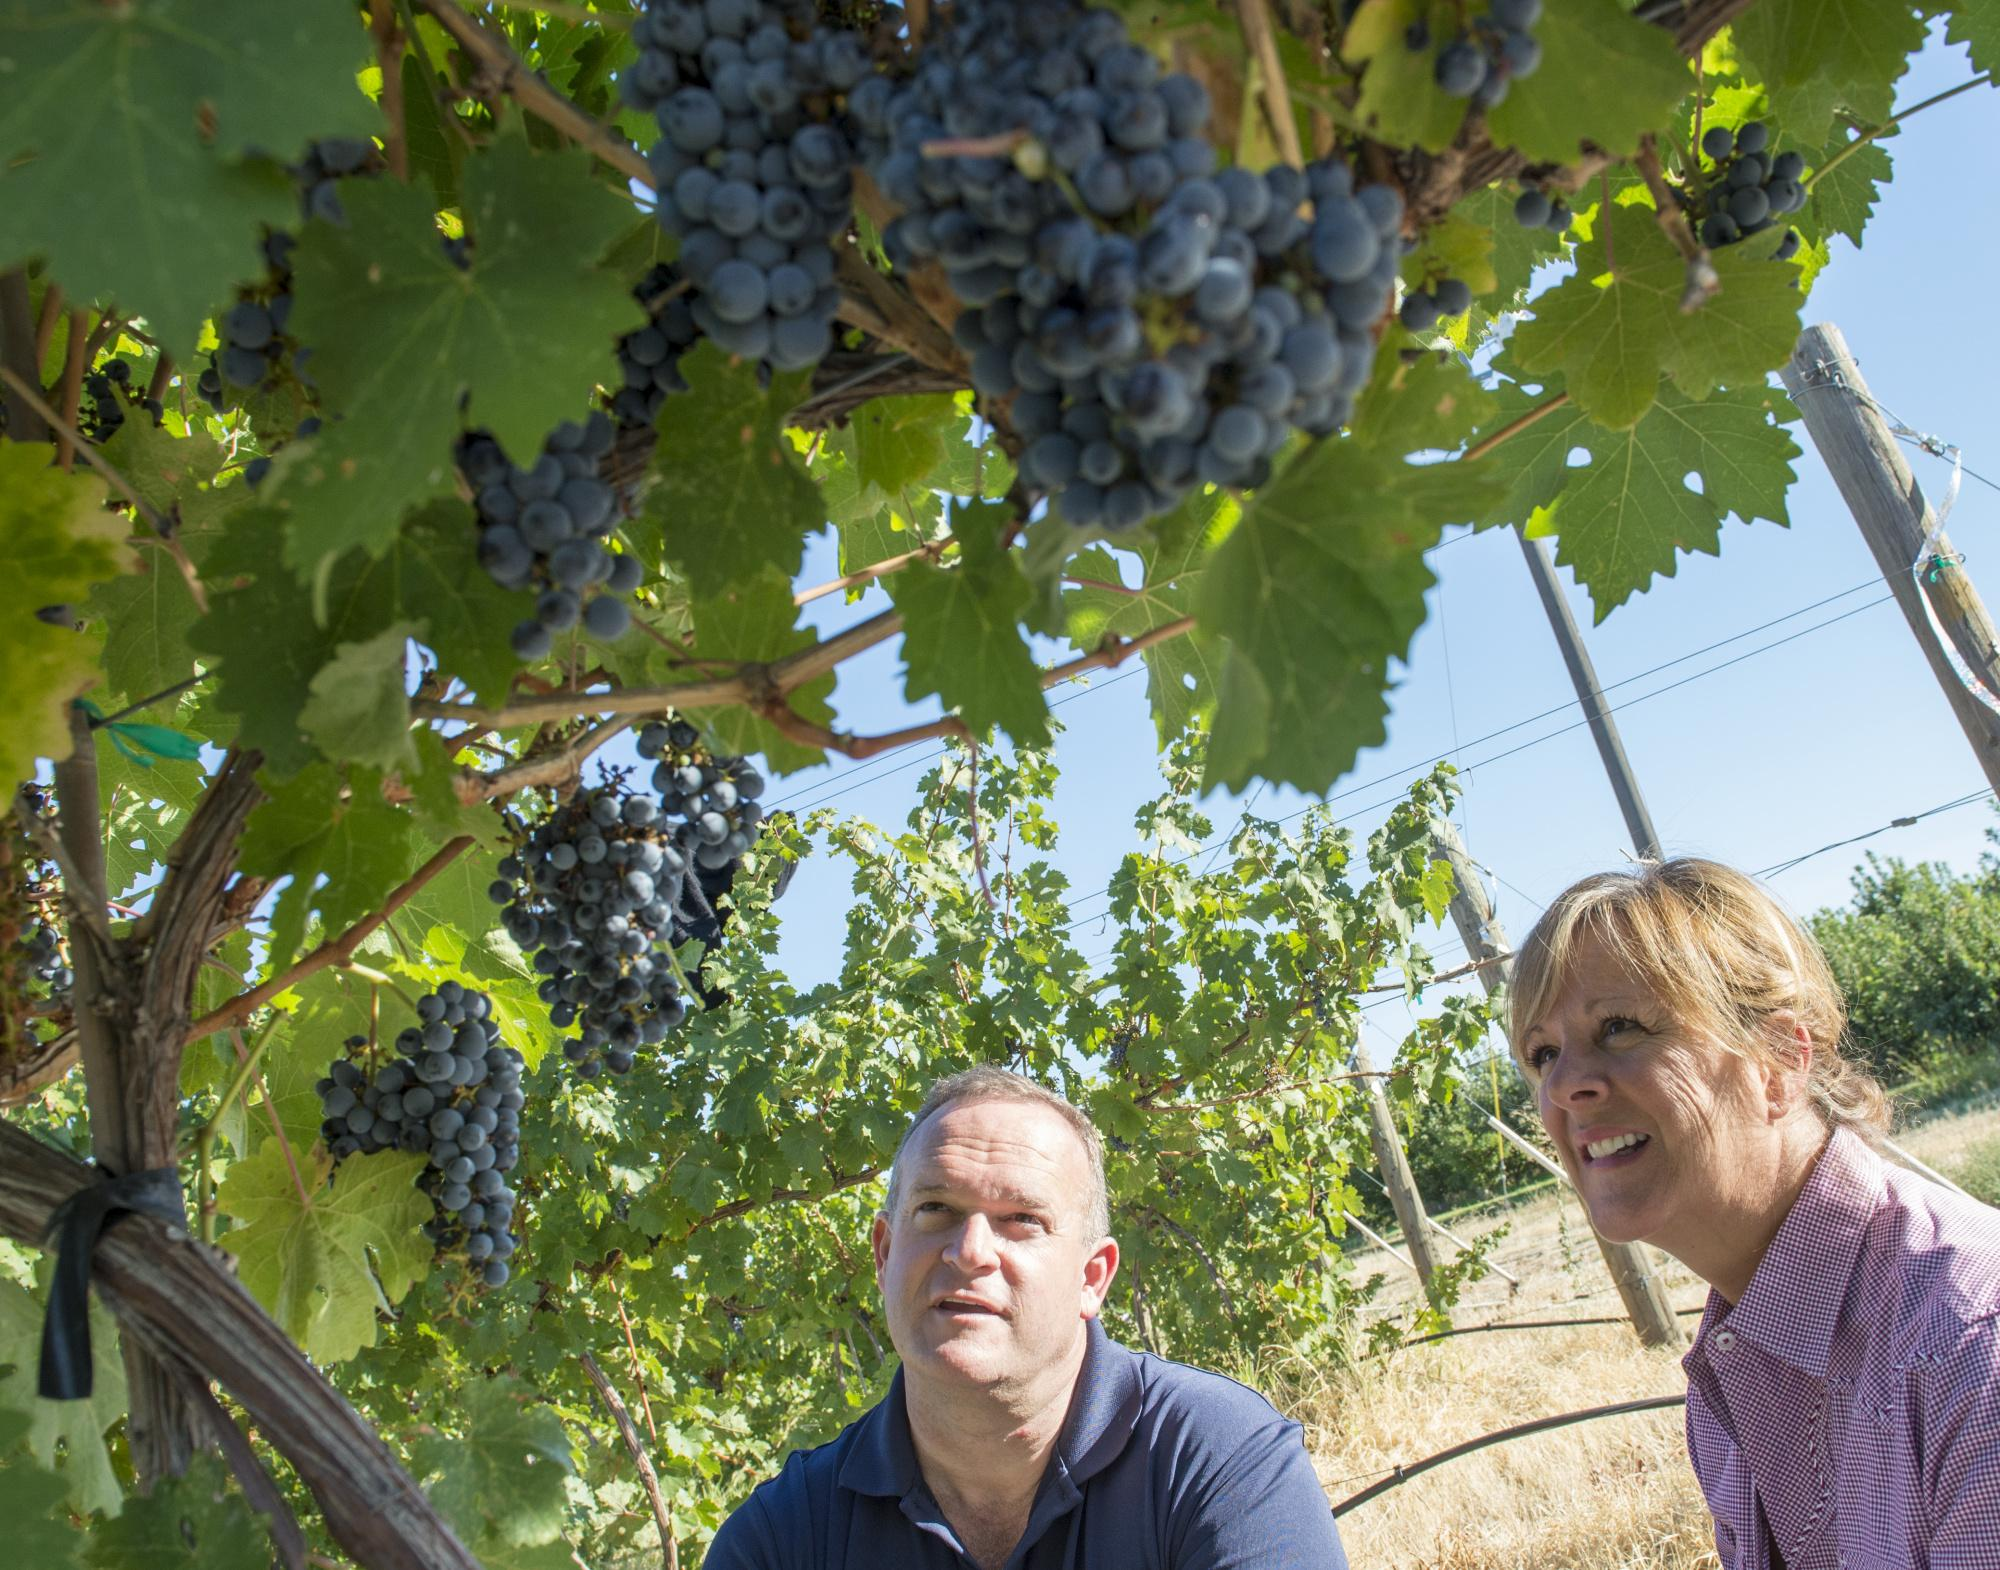 Researchers viewing grapes